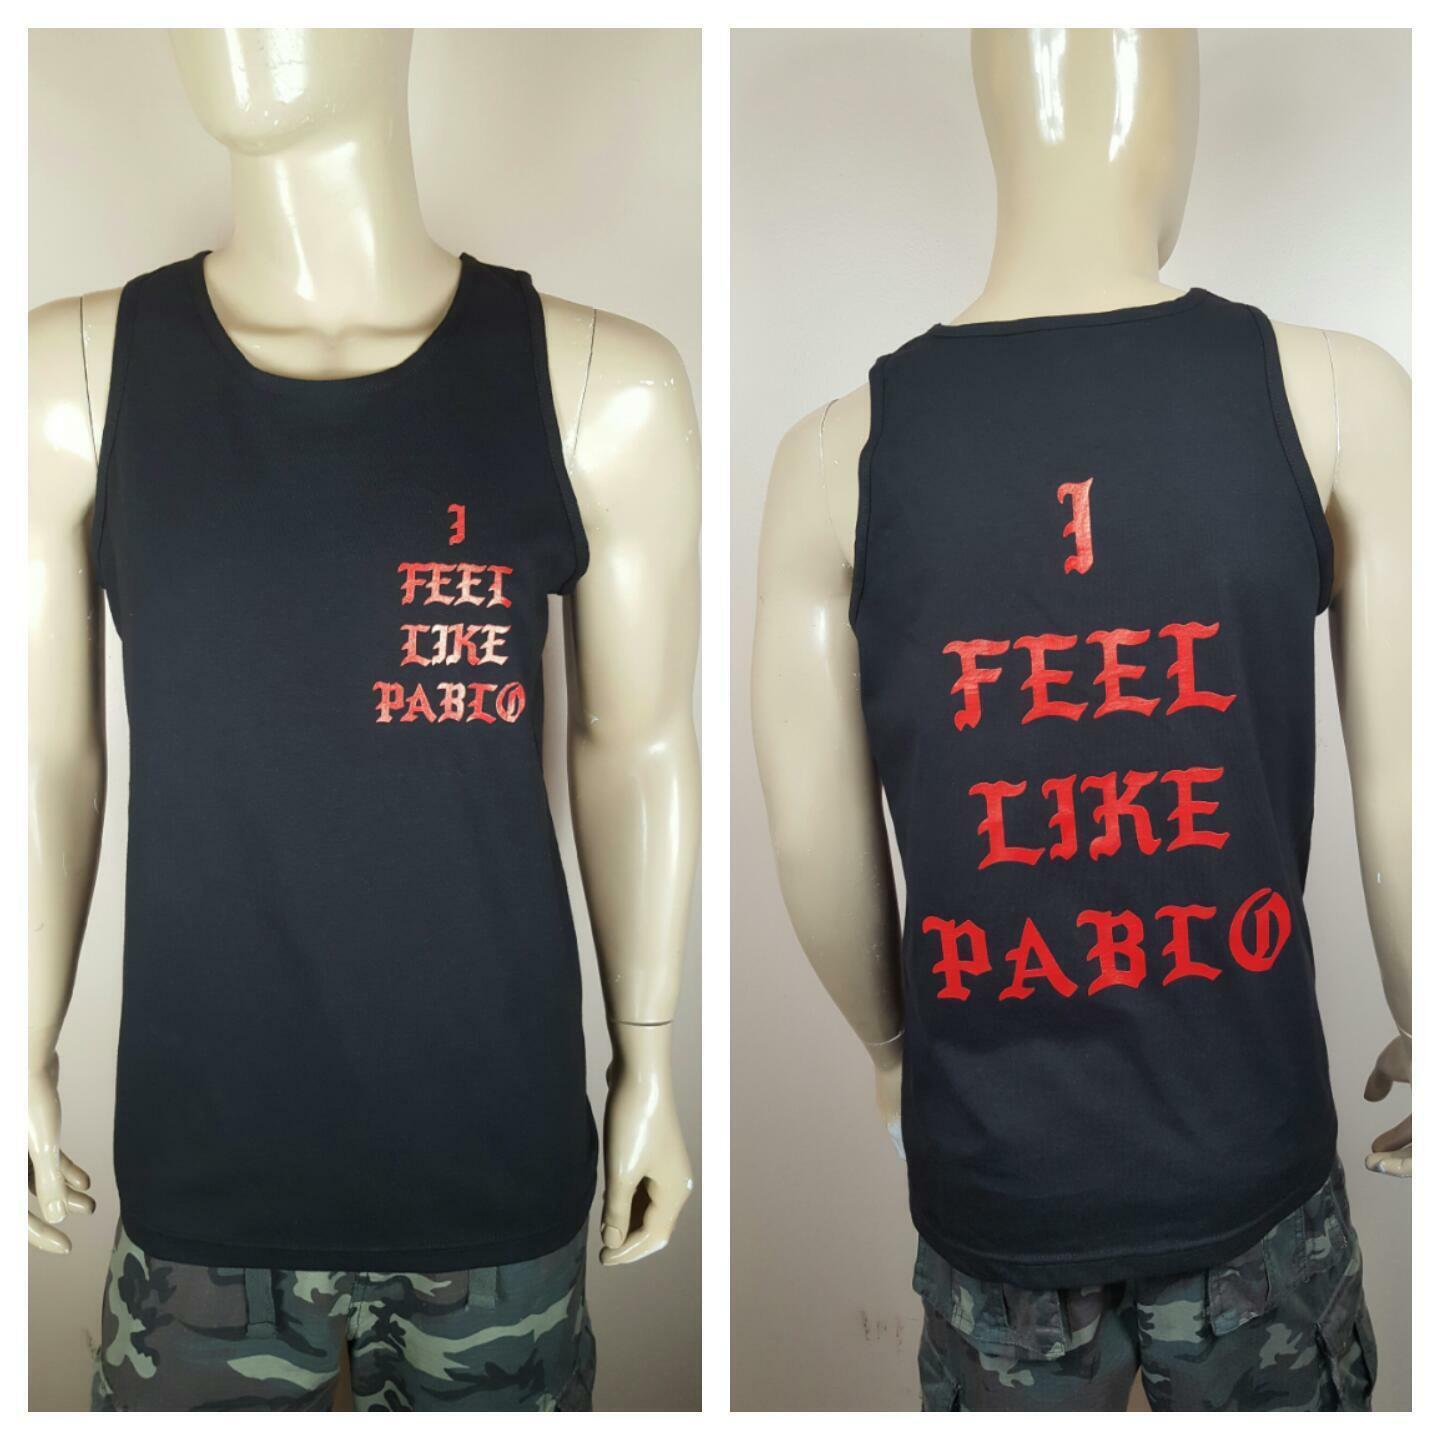 I Feel  Like Pablo Logo  Black Tank Top The Real Life  Of  Kanye West Yeezy - $20.99 - $22.99